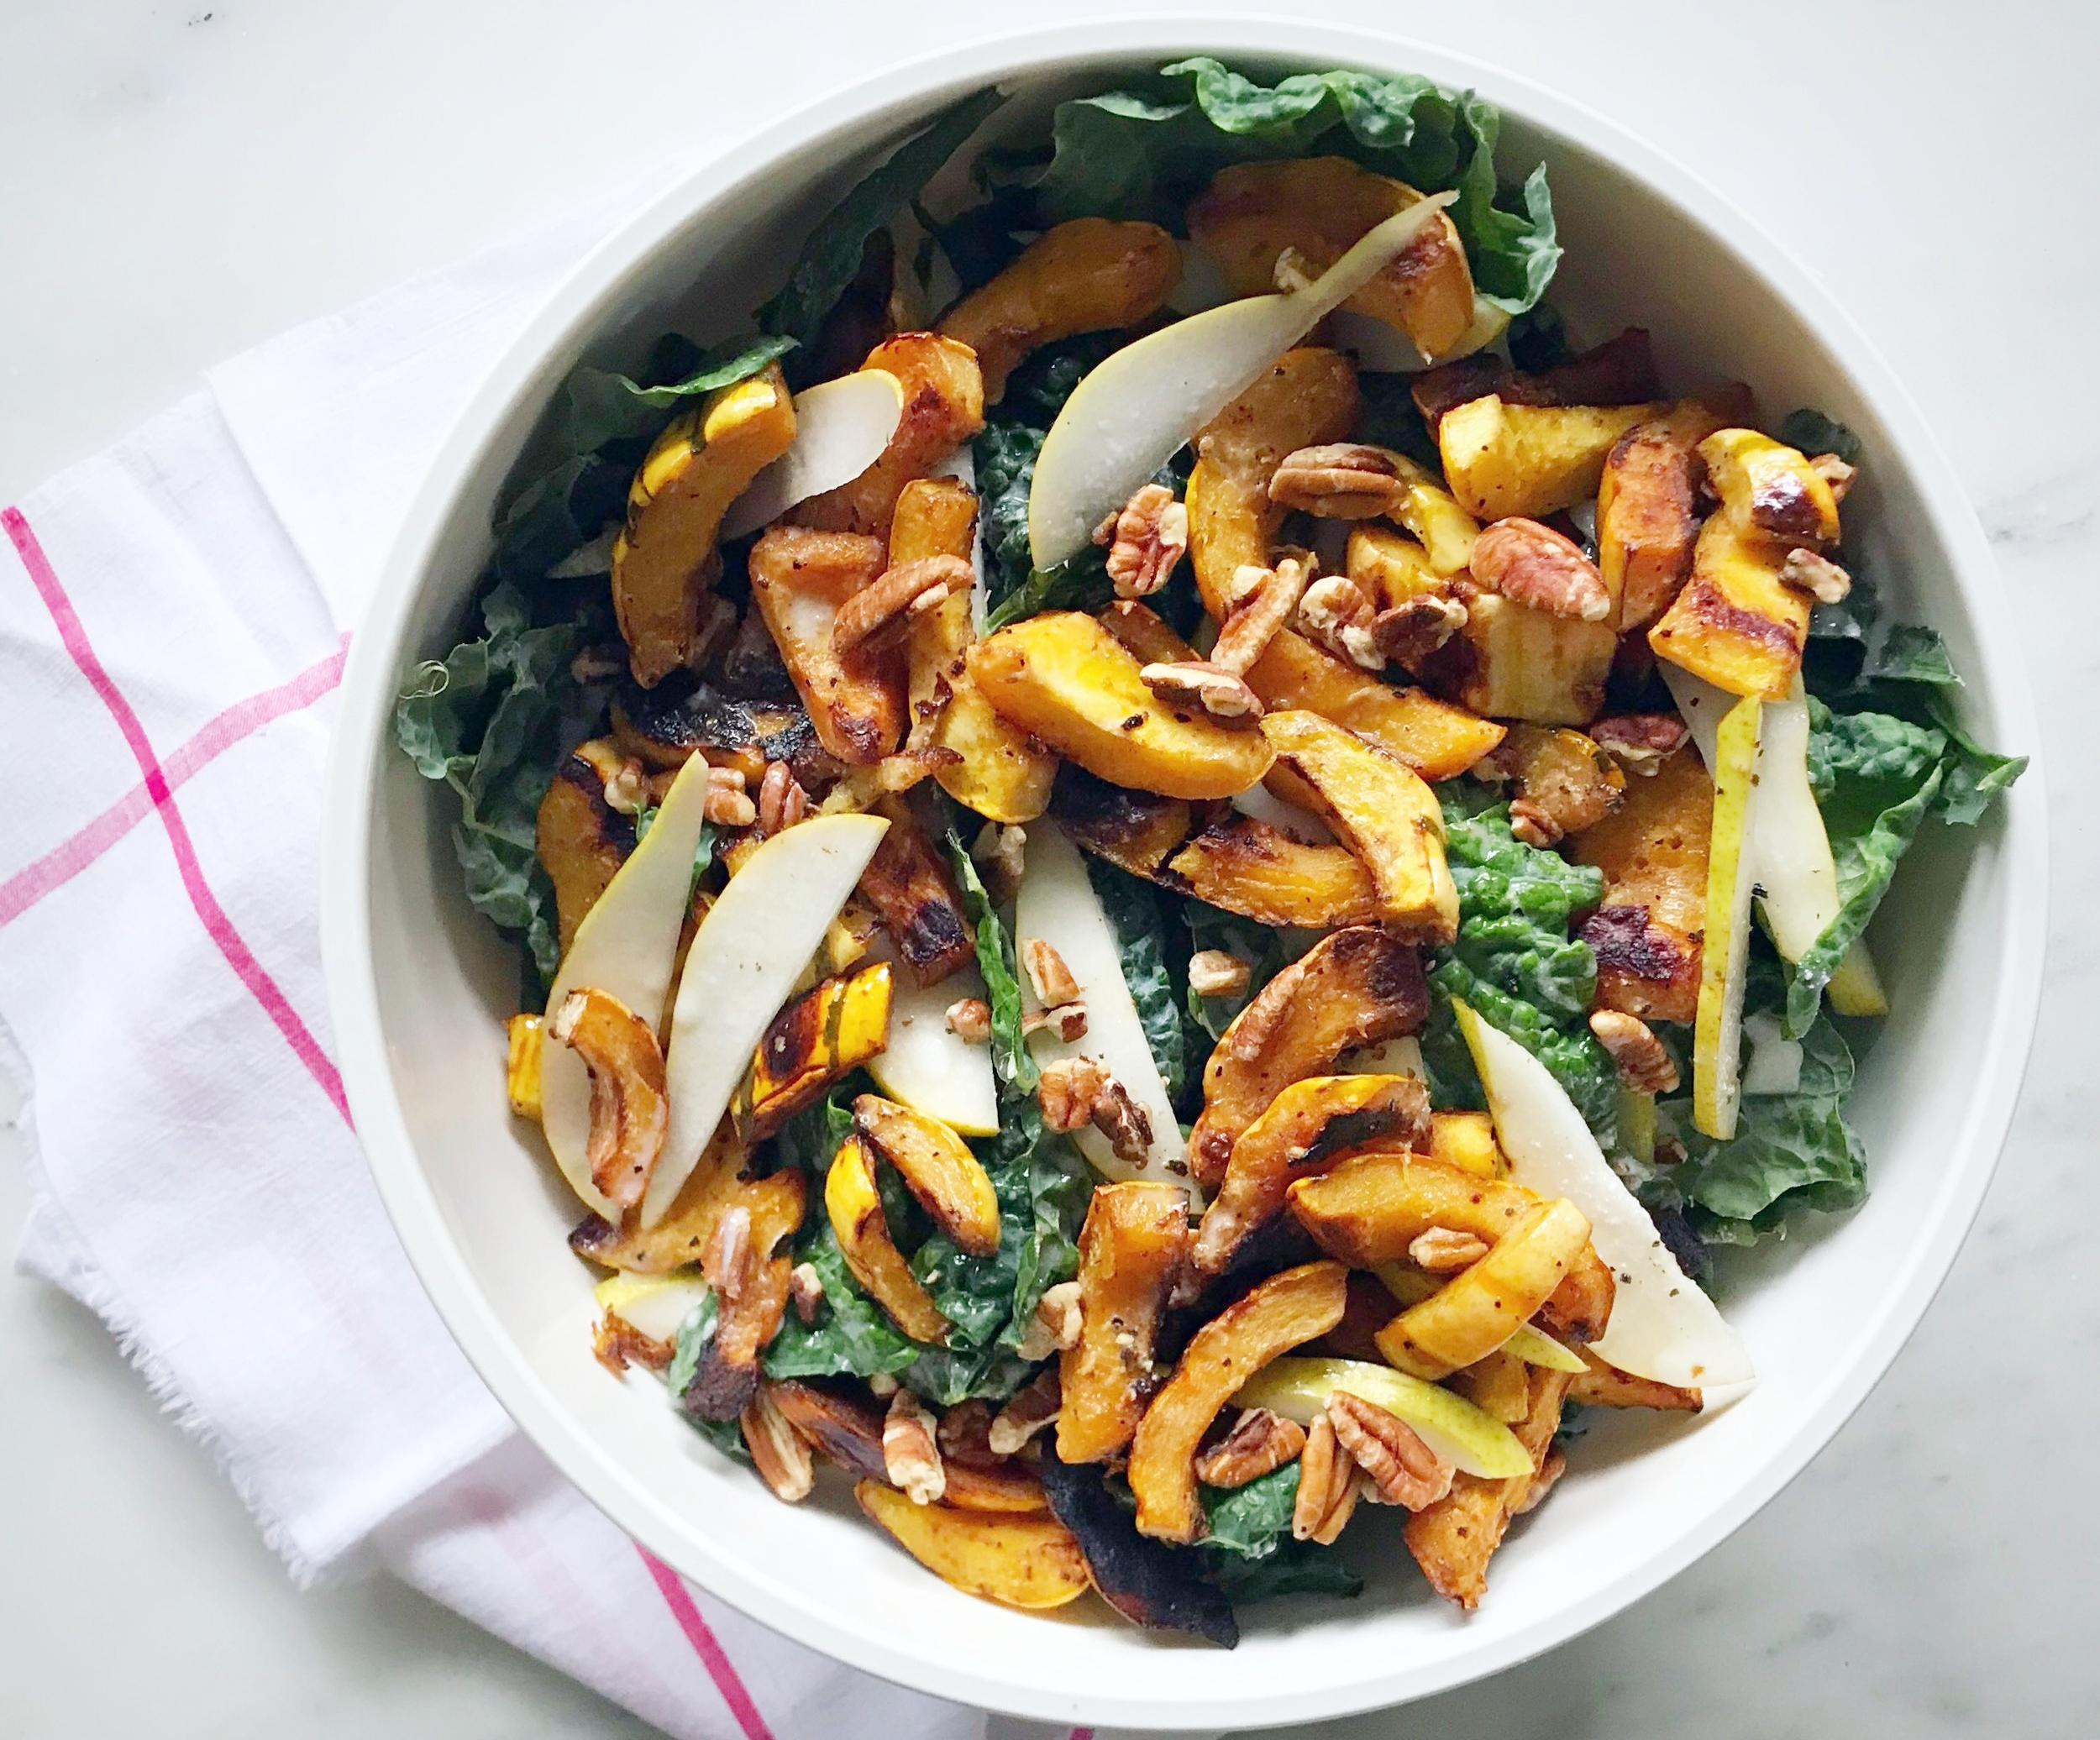 Fruit, nut, root veggie, something creamy and green is a great formula for a cold weather salad